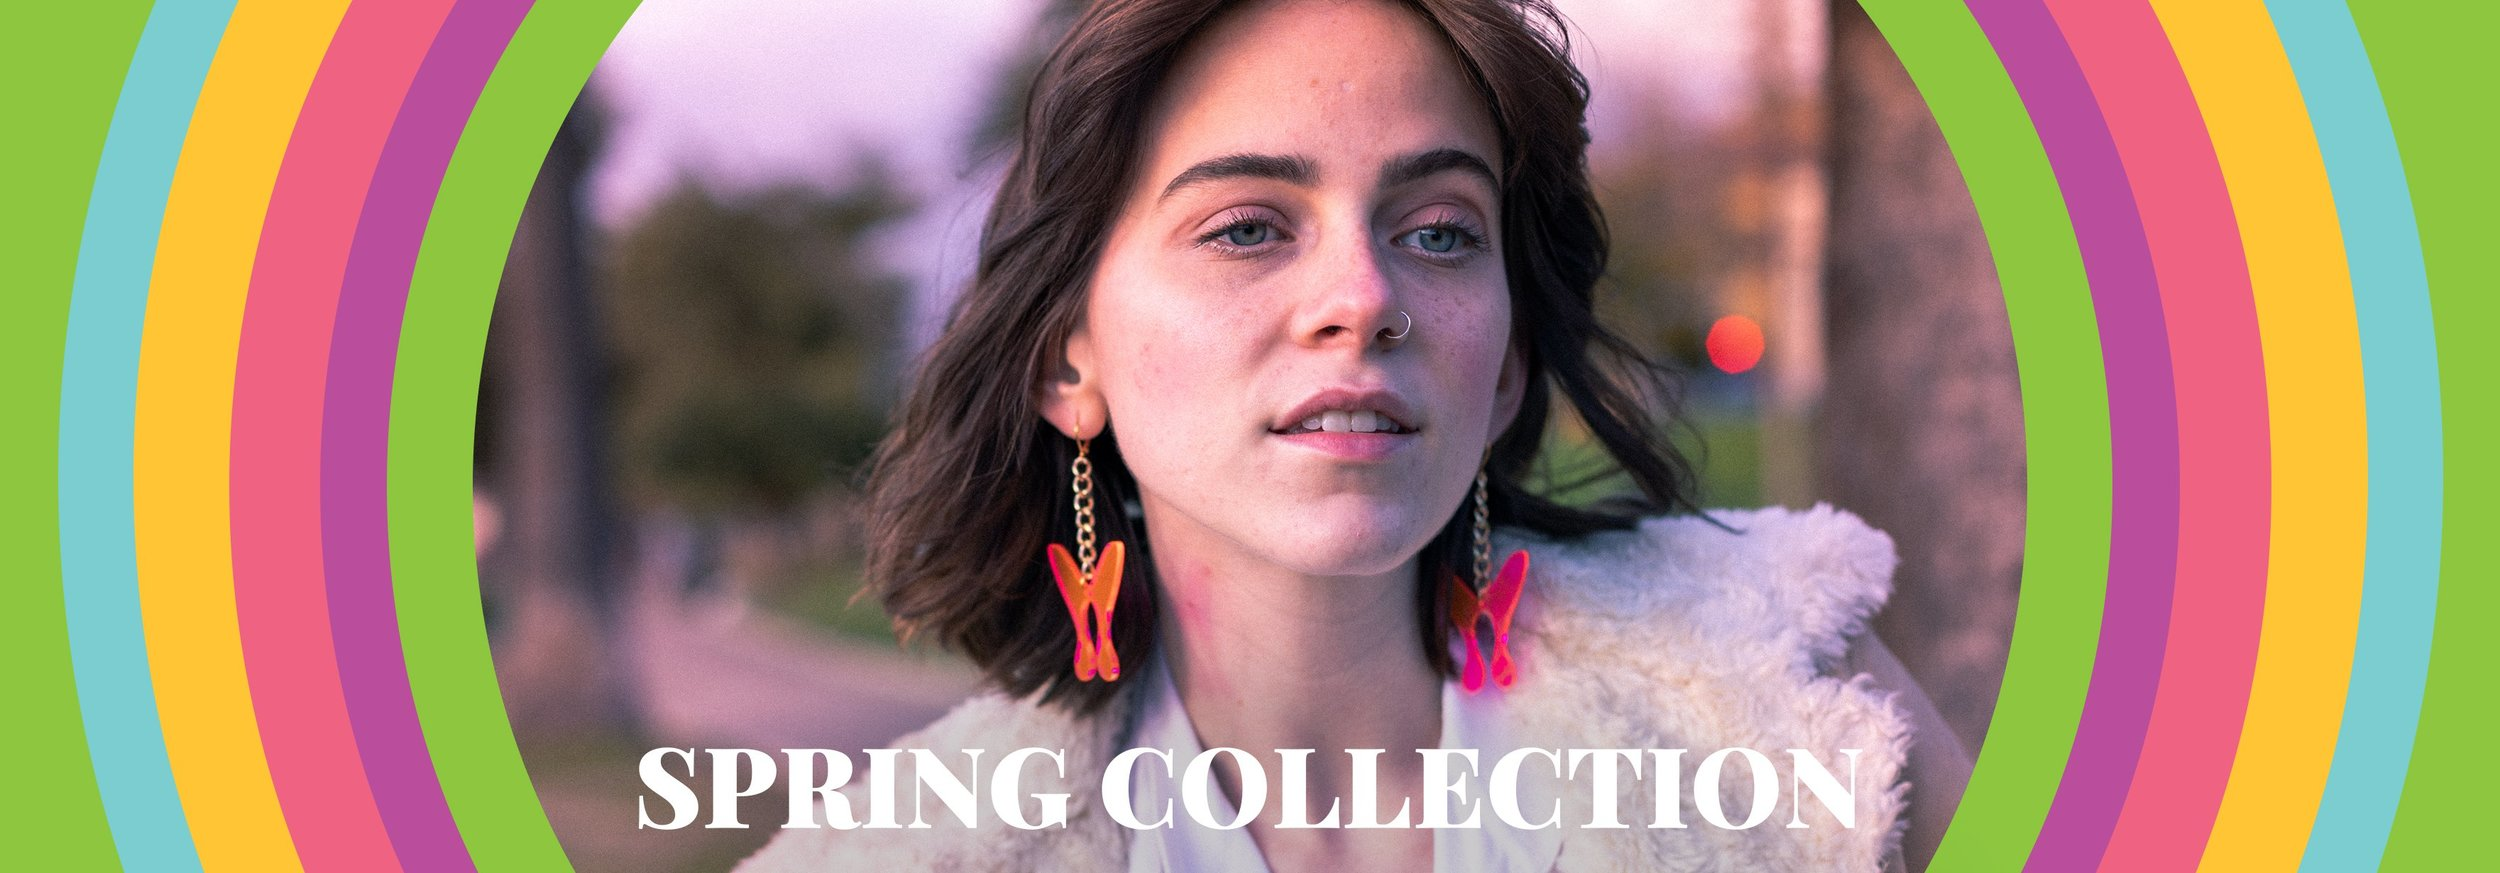 Spring_COLLECTIONSPRING.jpg